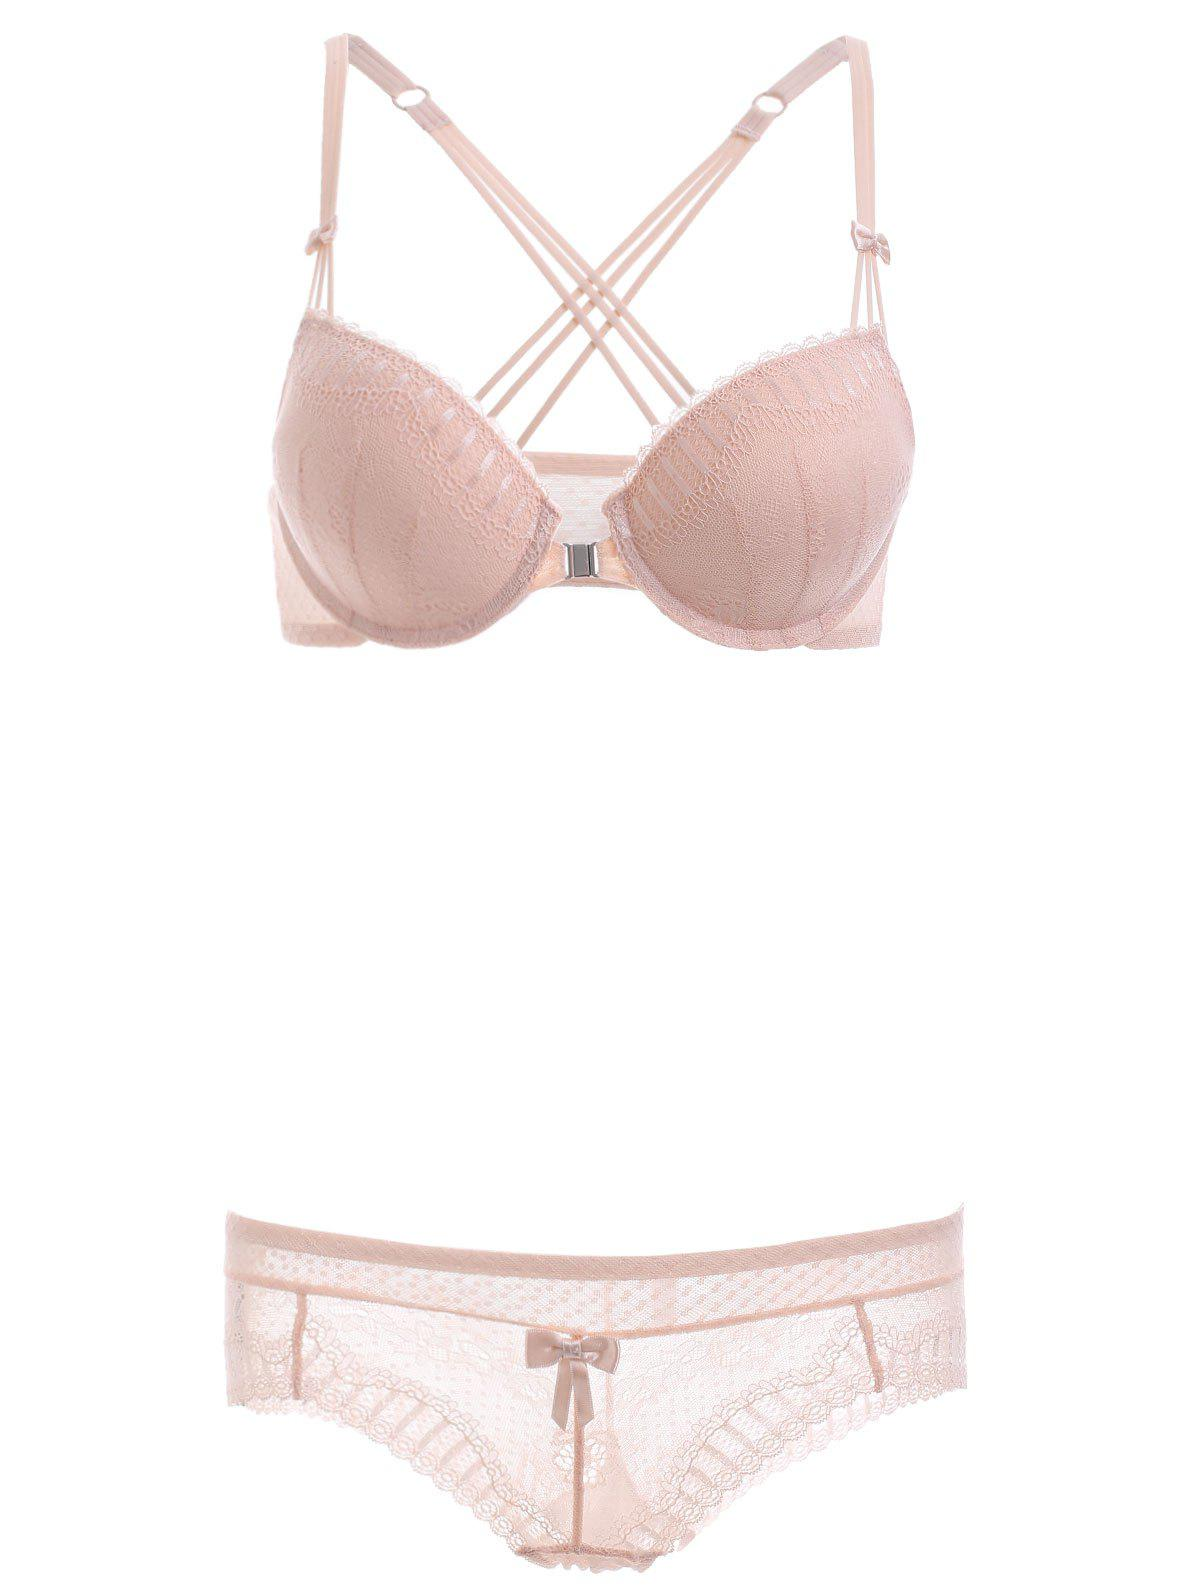 Front Closure Strappy Bra Set with Lace - NUDE 70C